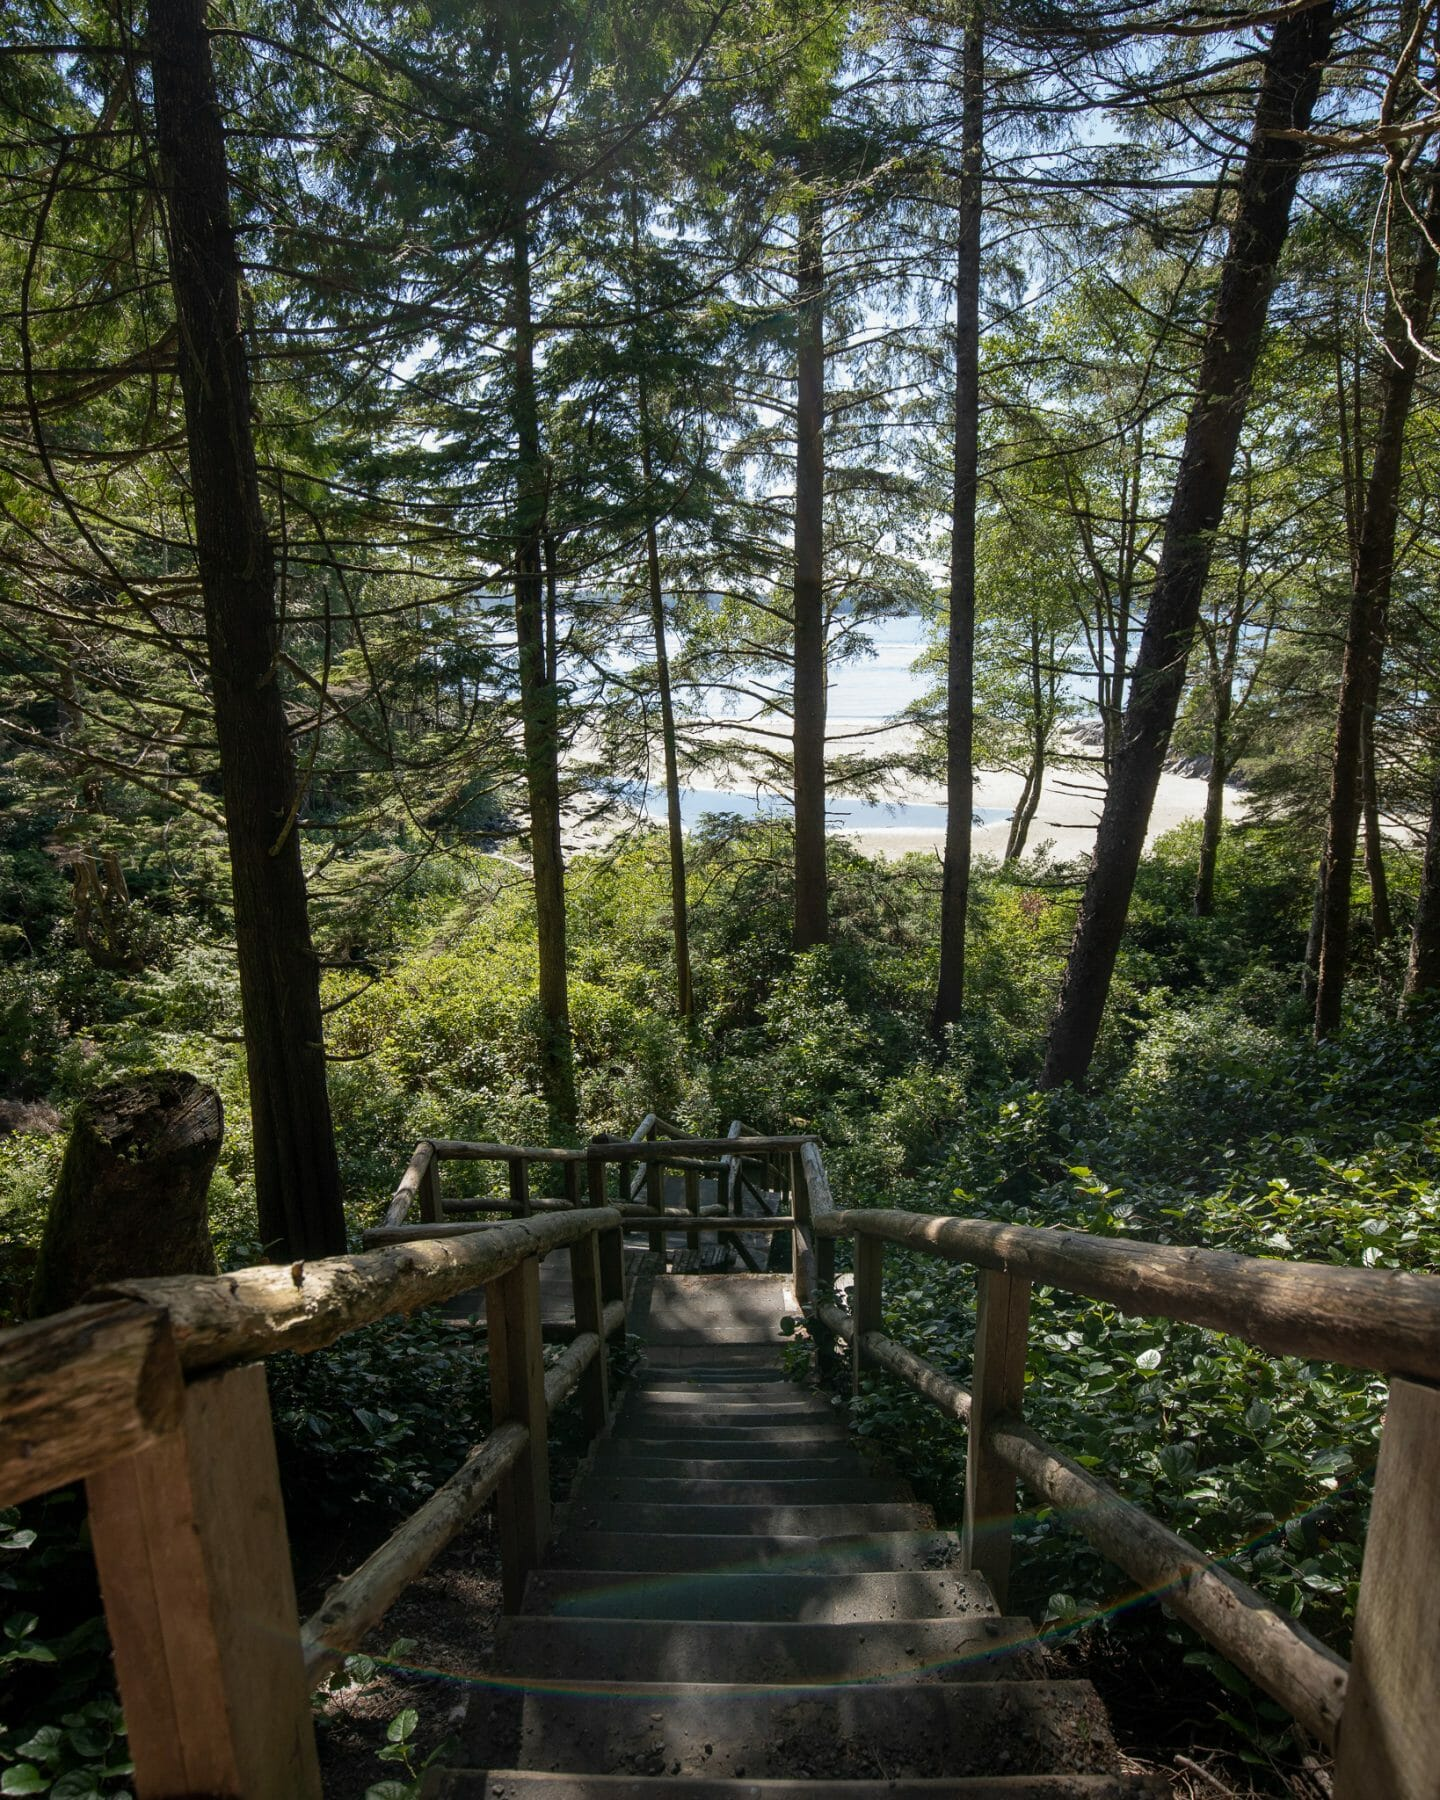 Tonquin Trail Stairs in Tofino